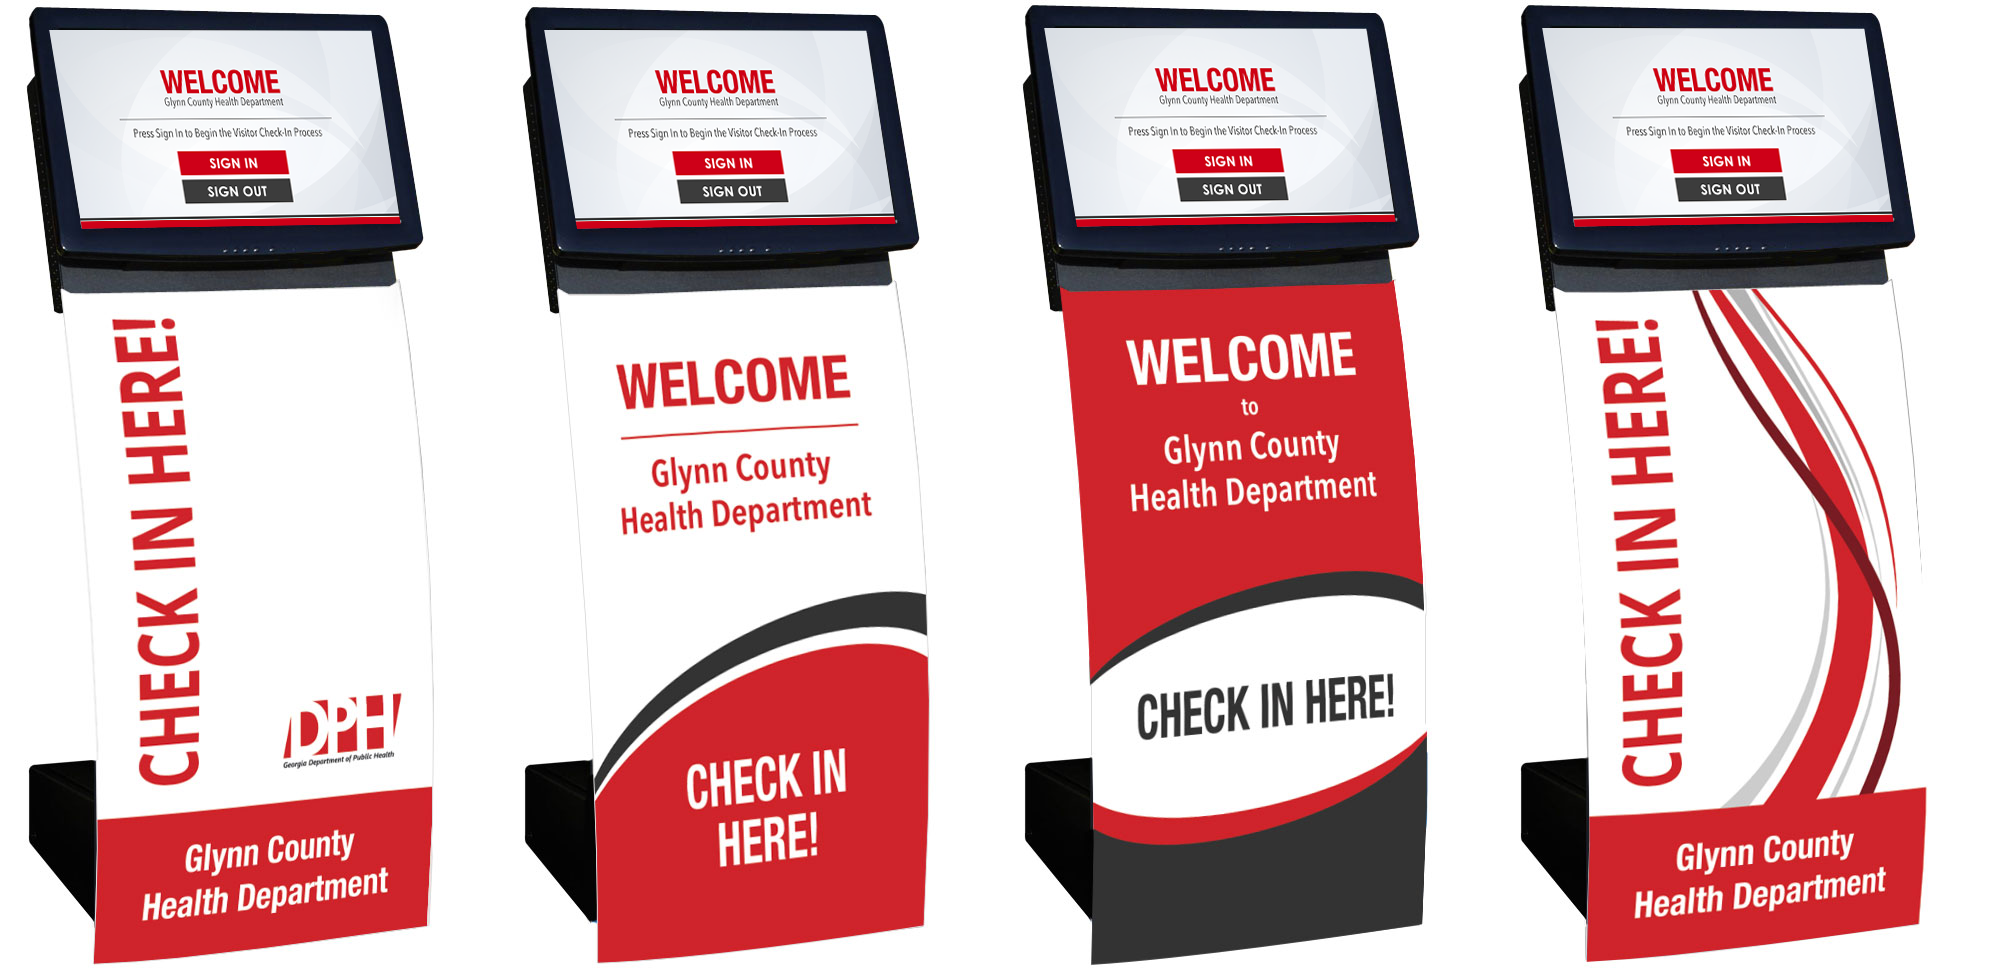 Custom Design Example for Curved Visitor Management Kiosk